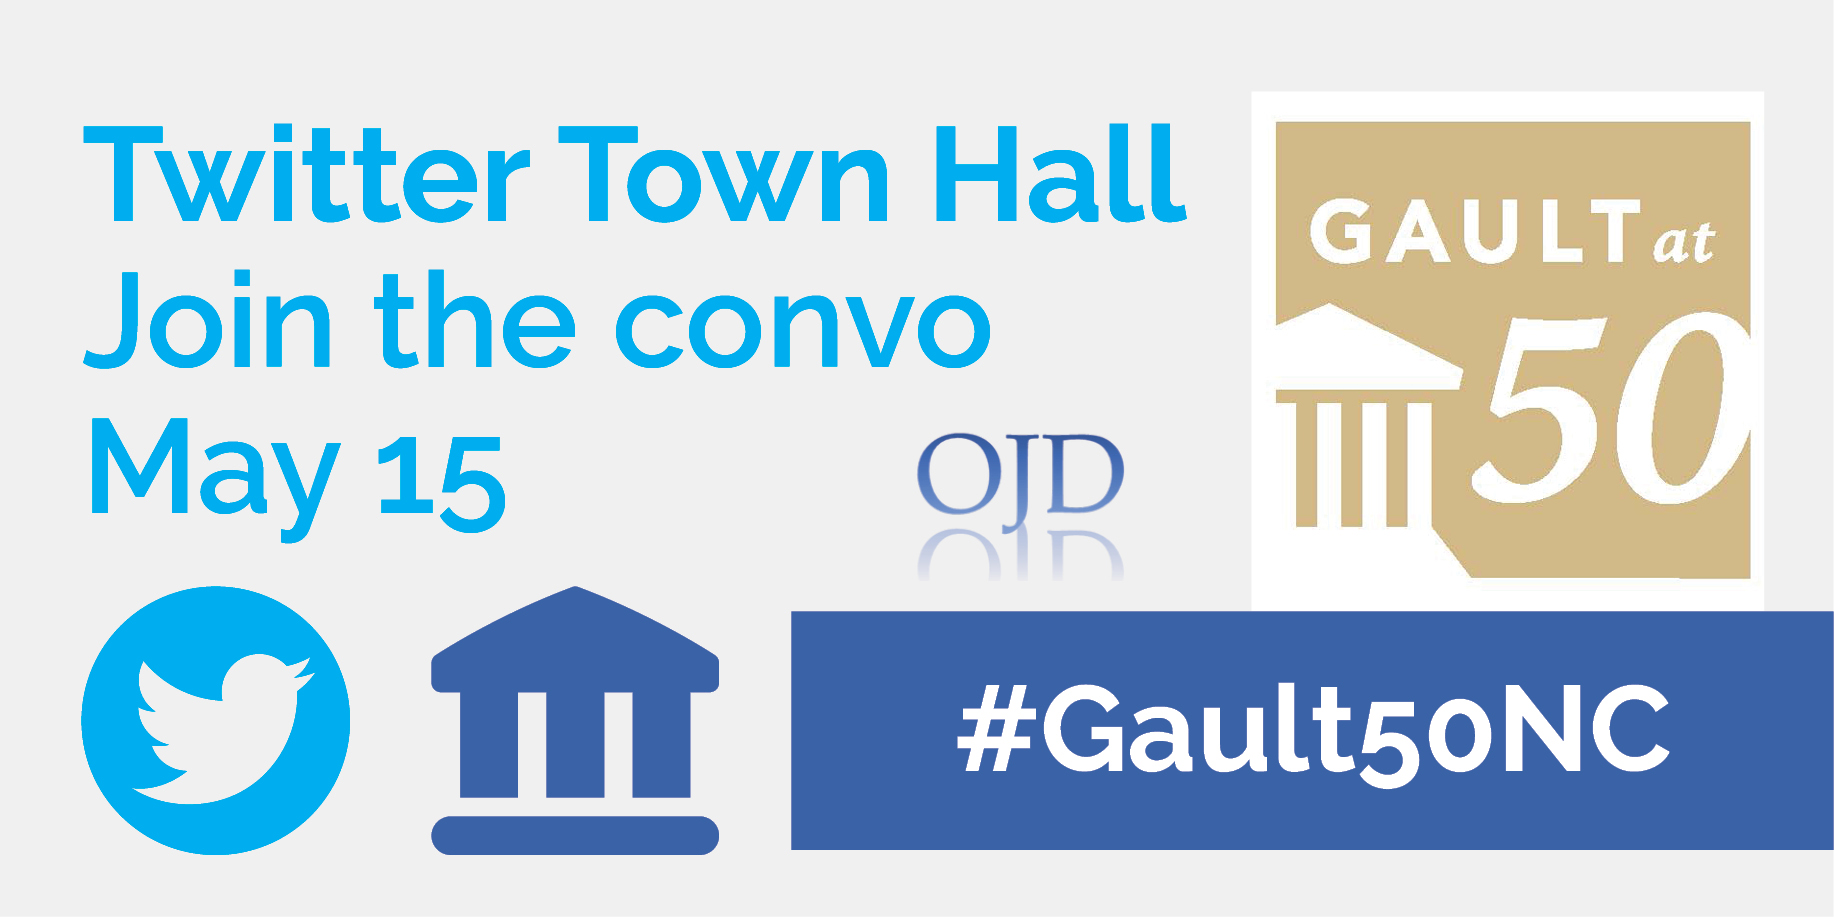 Gault50NC Twitter Town Hall